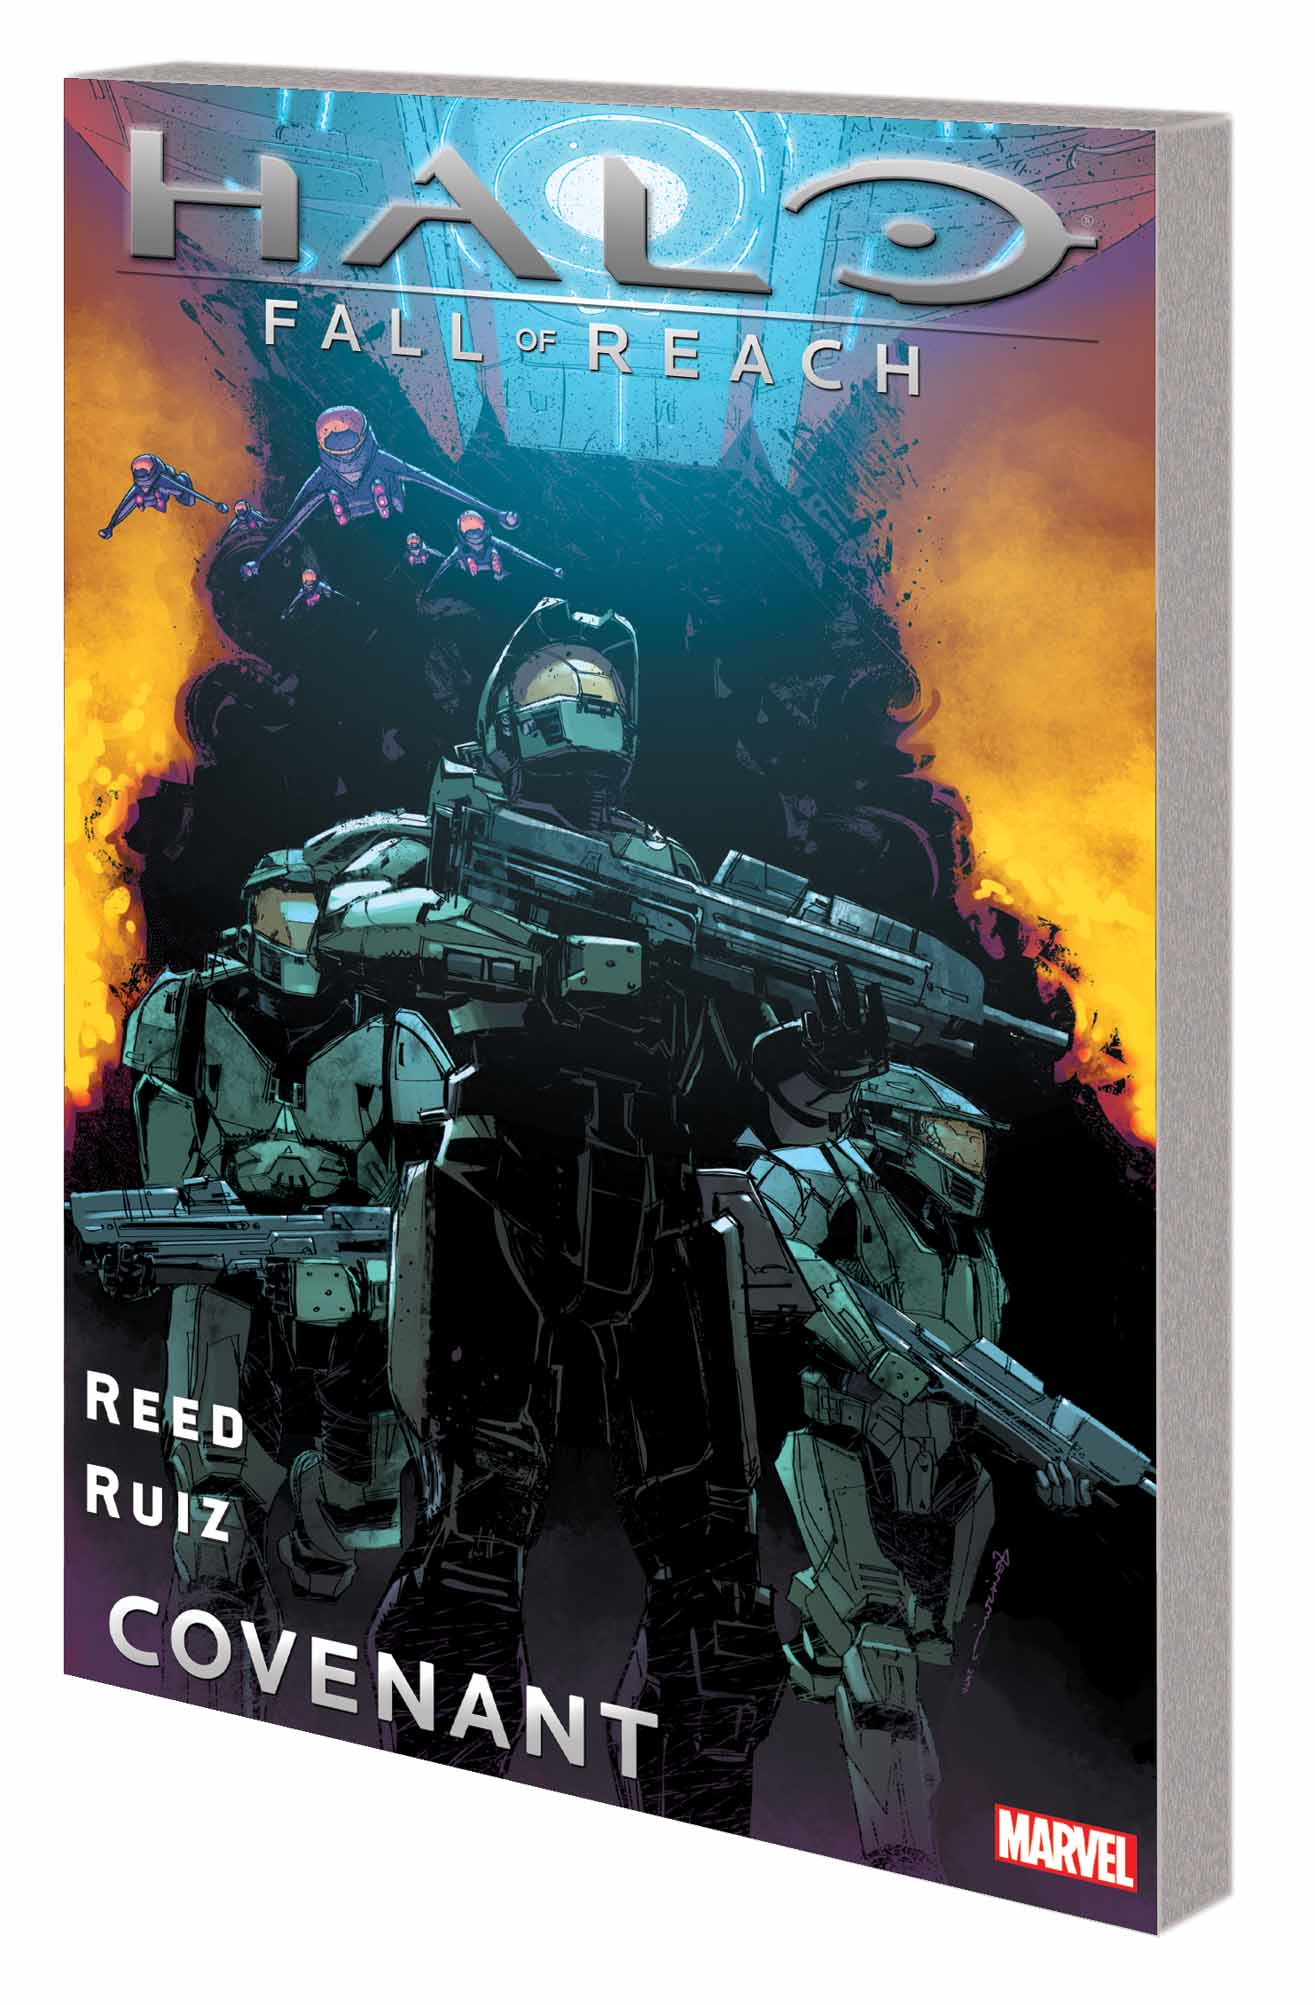 Halo: Fall of Reach - Covenant TPB (Trade Paperback)